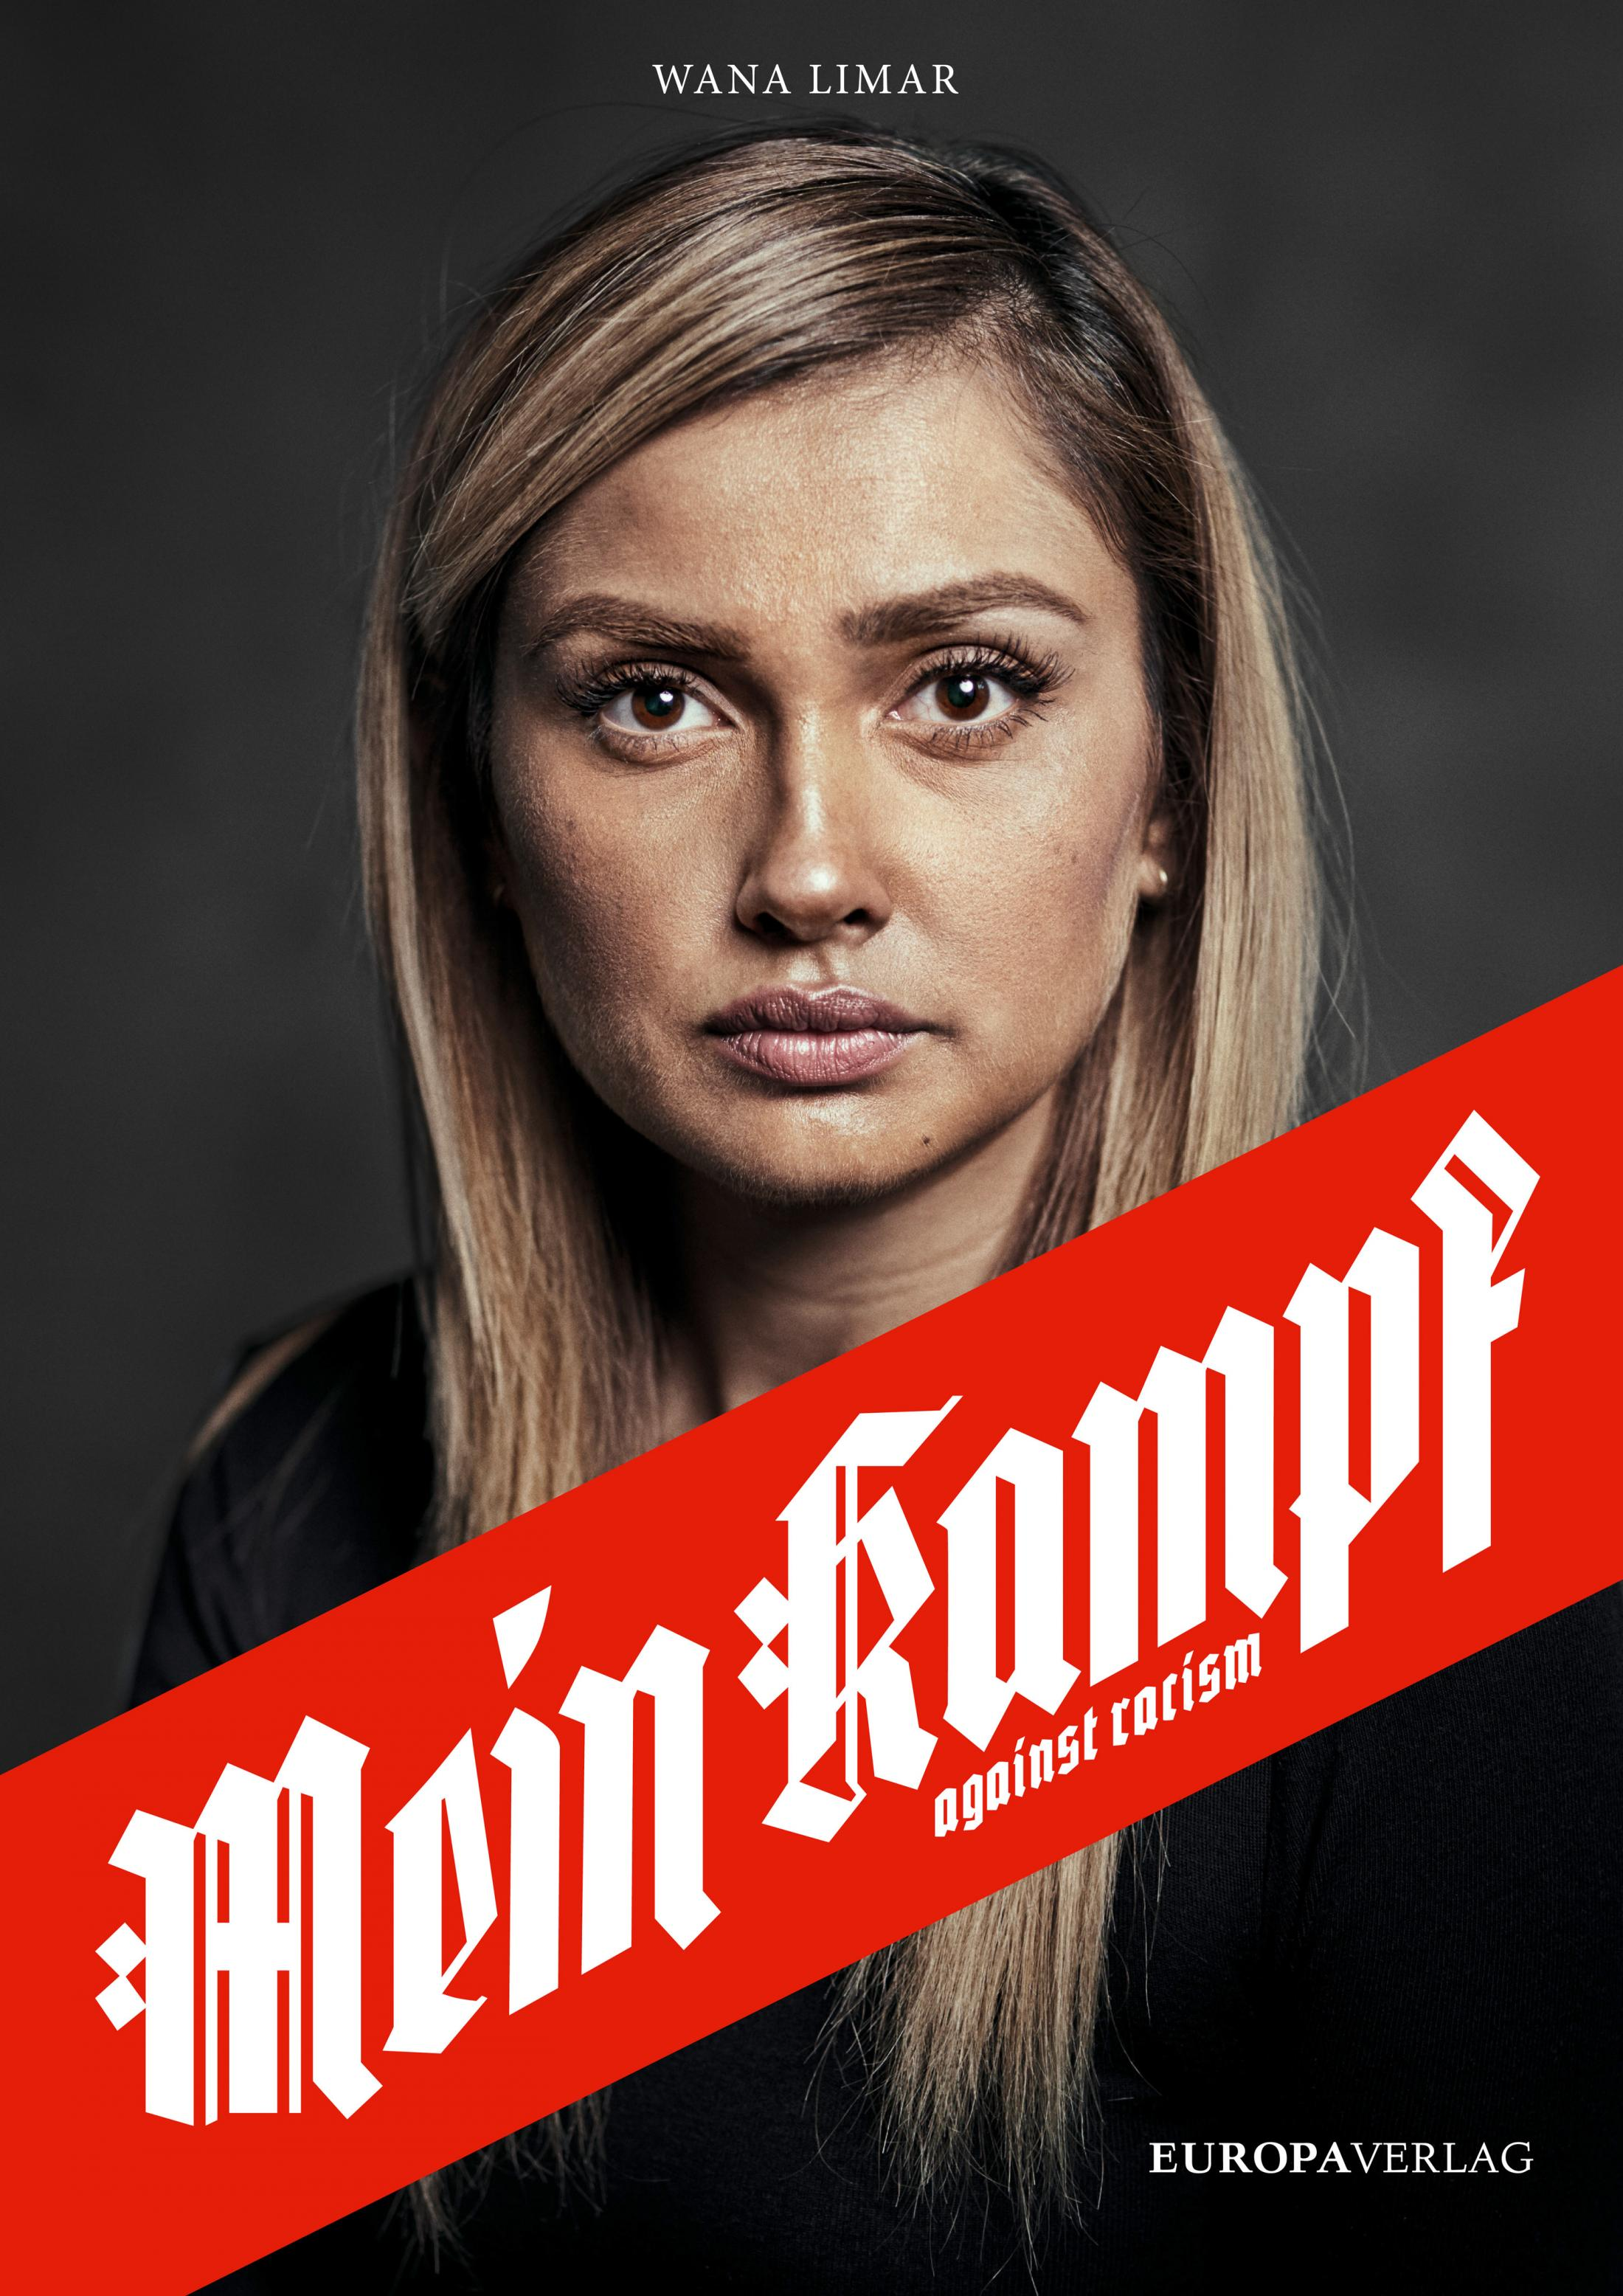 Image Media for Mein Kampf – against racism/ Print Ad:  Wana Limar